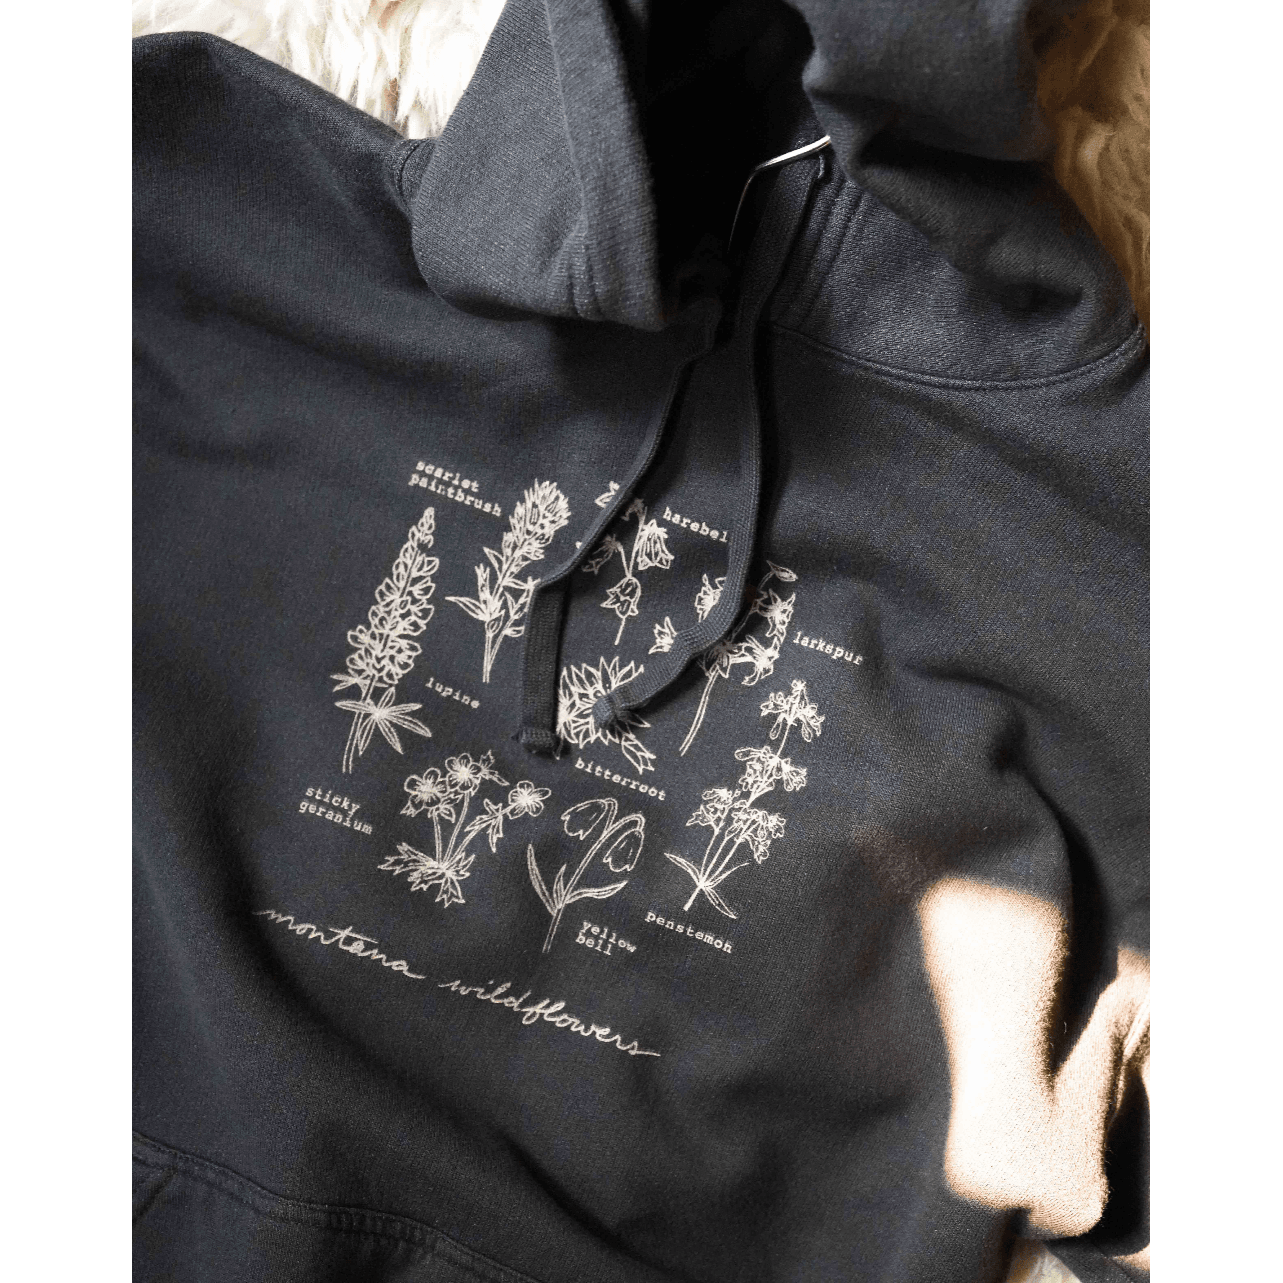 Vintage Black Wildflowers Hoodie - Intrigue Ink Visit Bozeman, Unique Shopping Boutique in Montana, Work from Home Clothes for Women